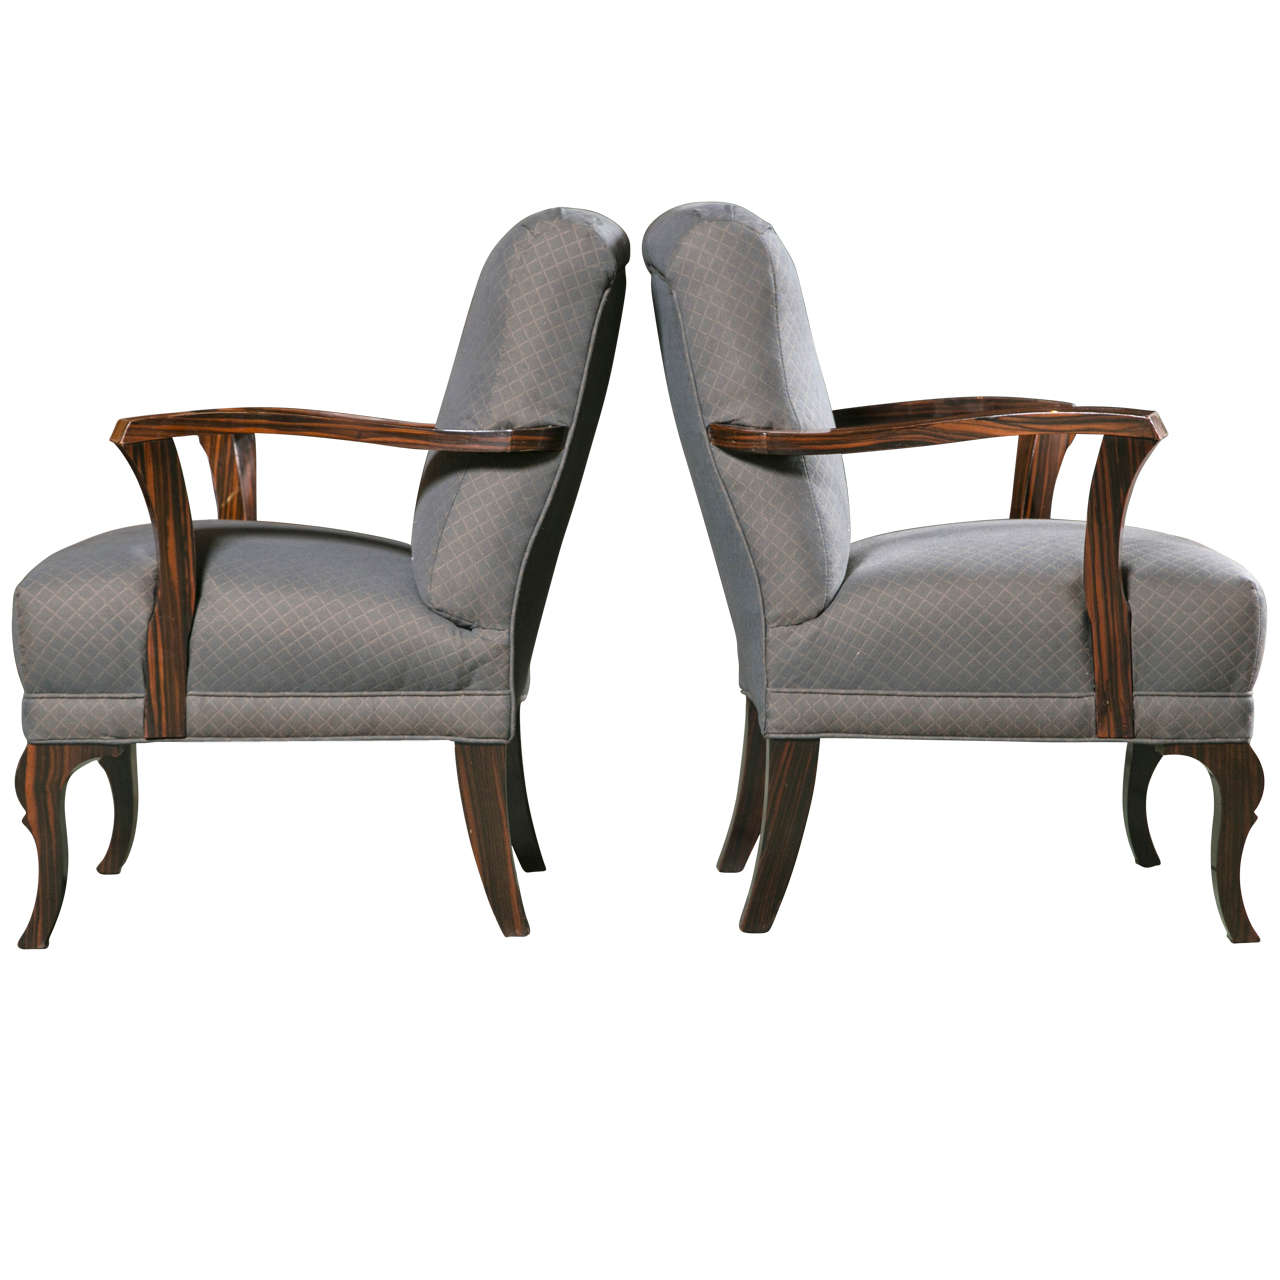 Pair of Art Deco Armchairs